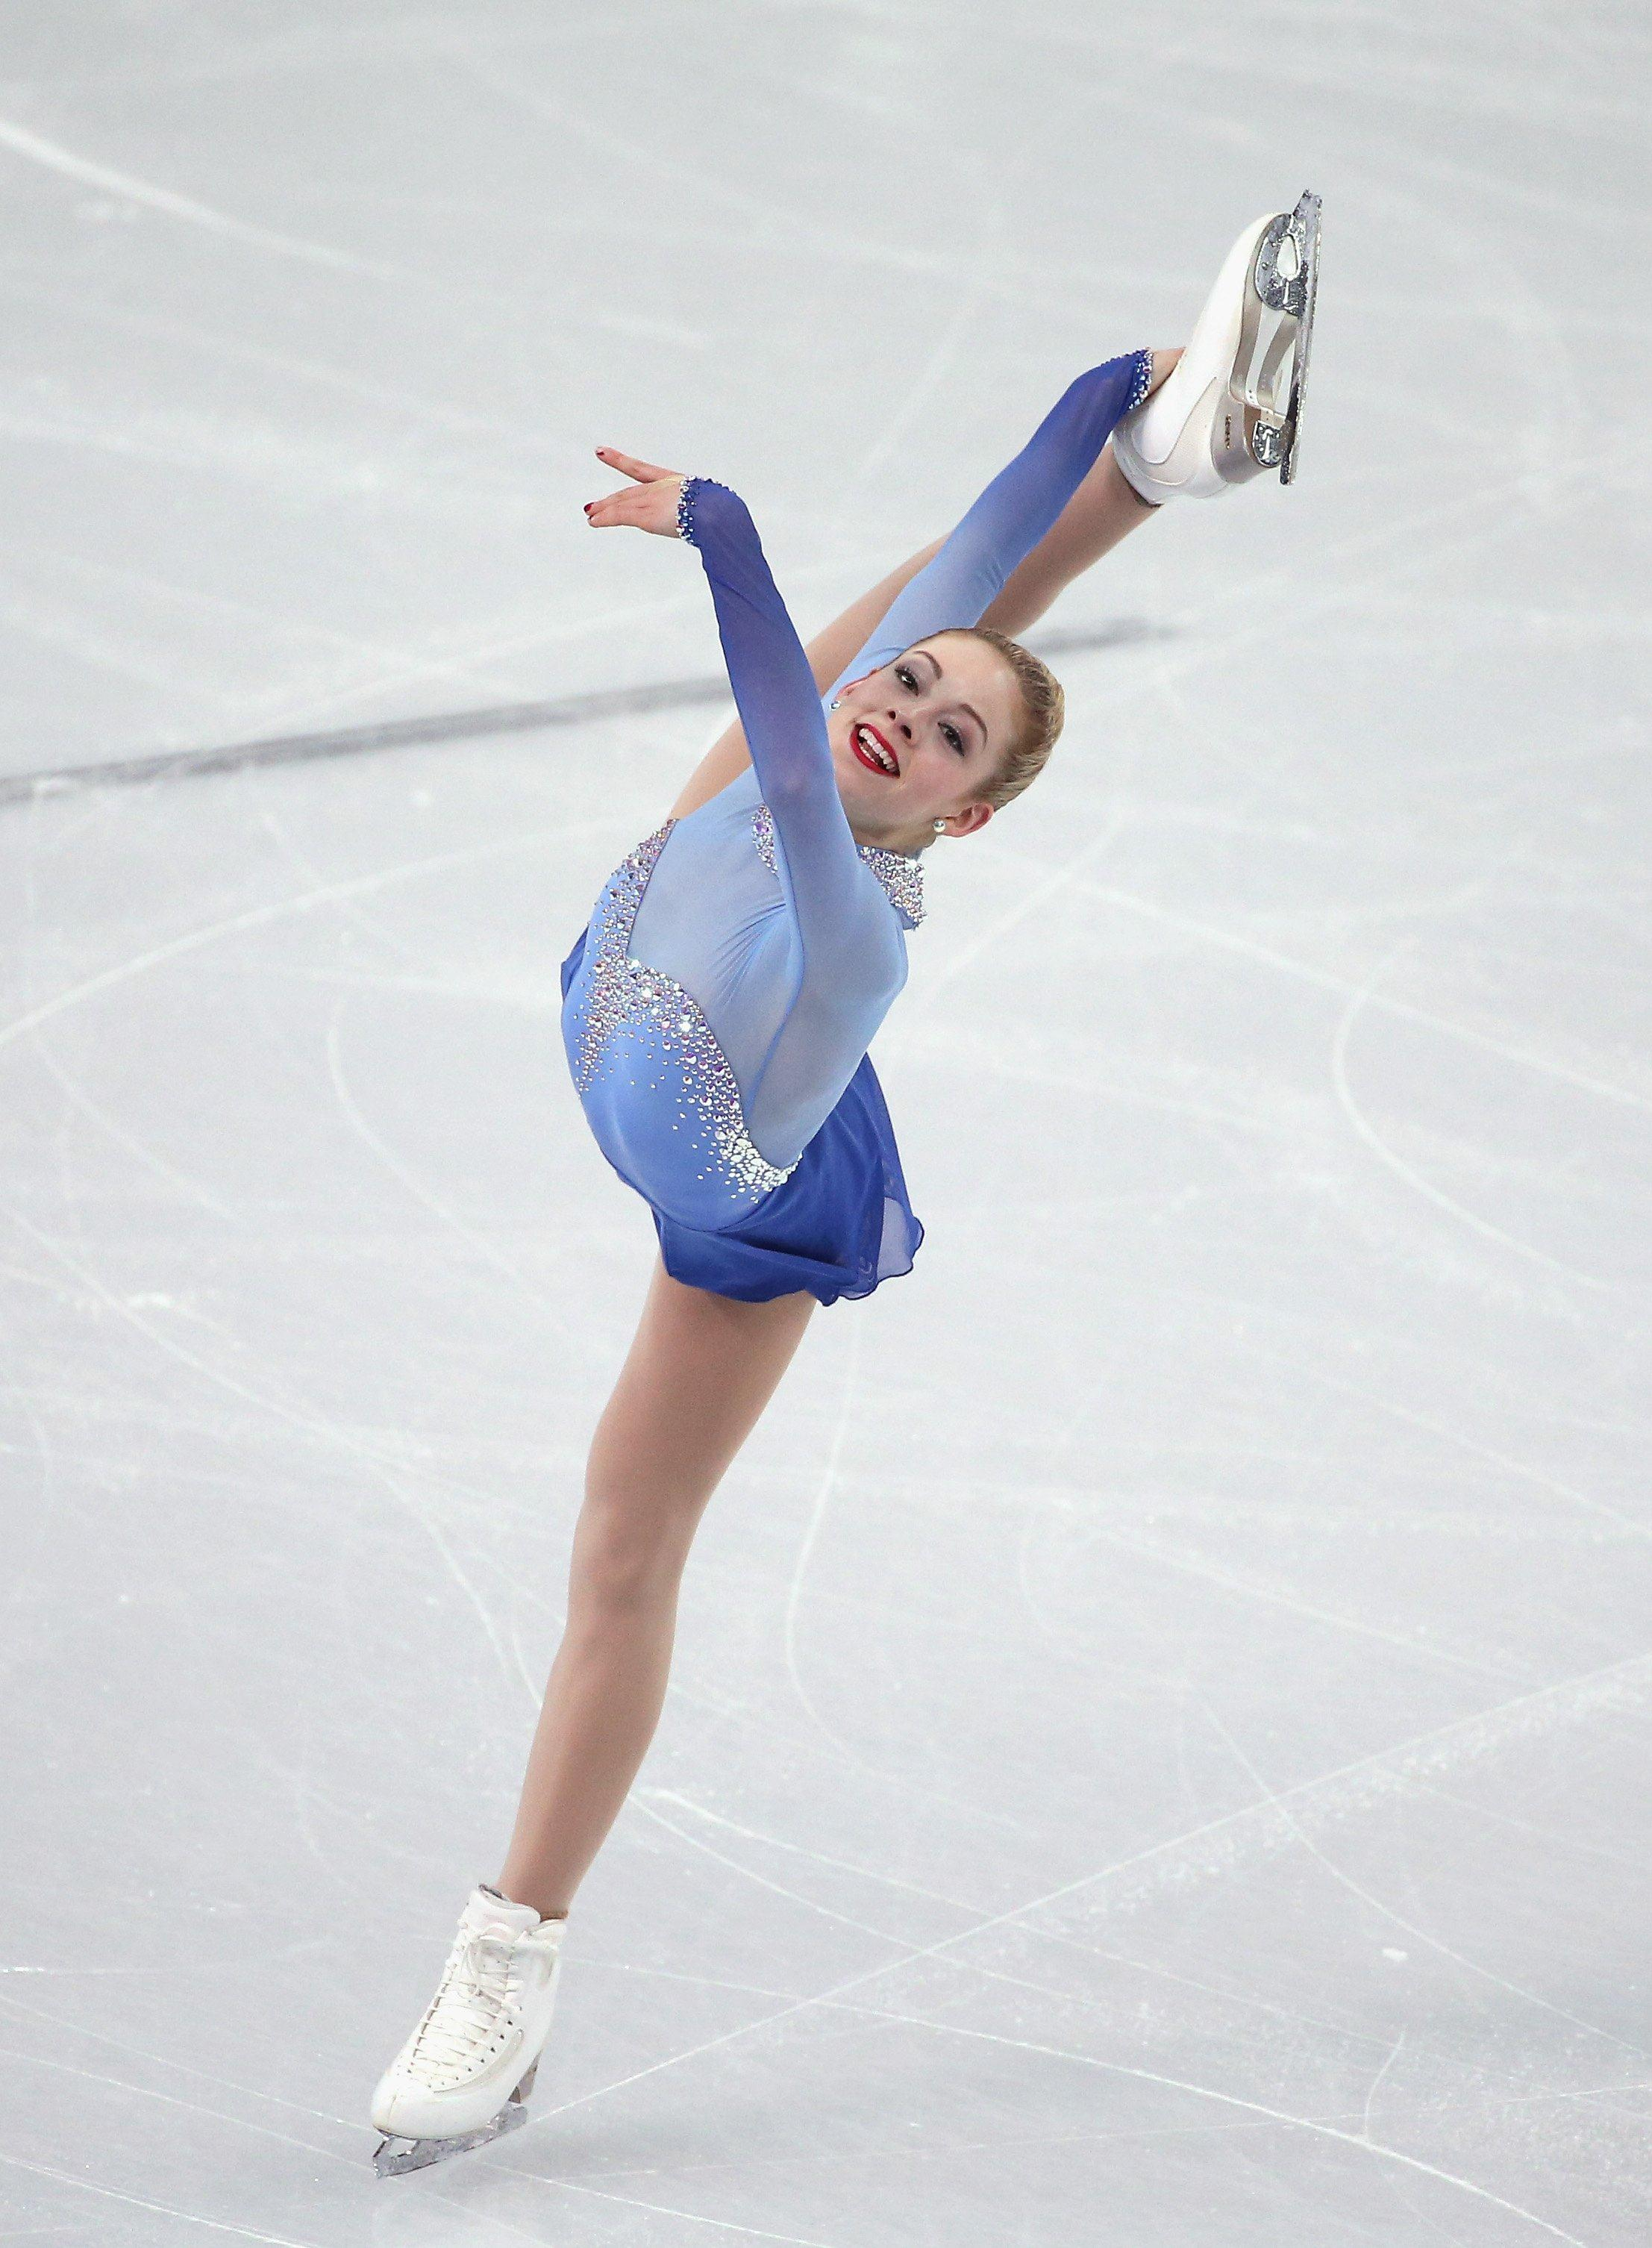 Figure skating split jumps